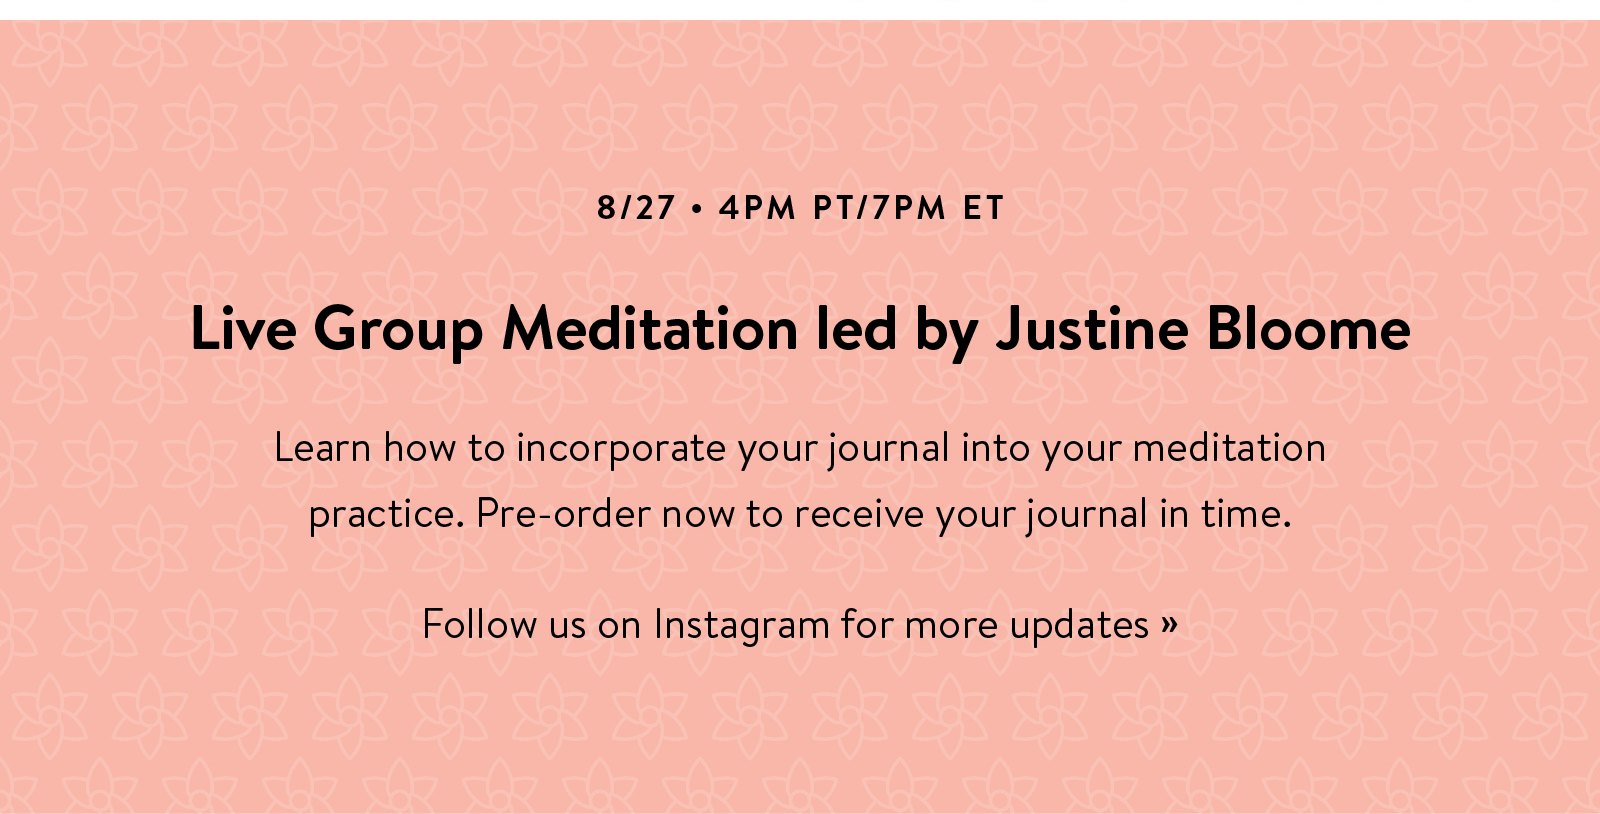 Live Group Meditation let by Justine Bloome. Pre-order now to receive your journal in time. Follow us on Instagram for more updates ?